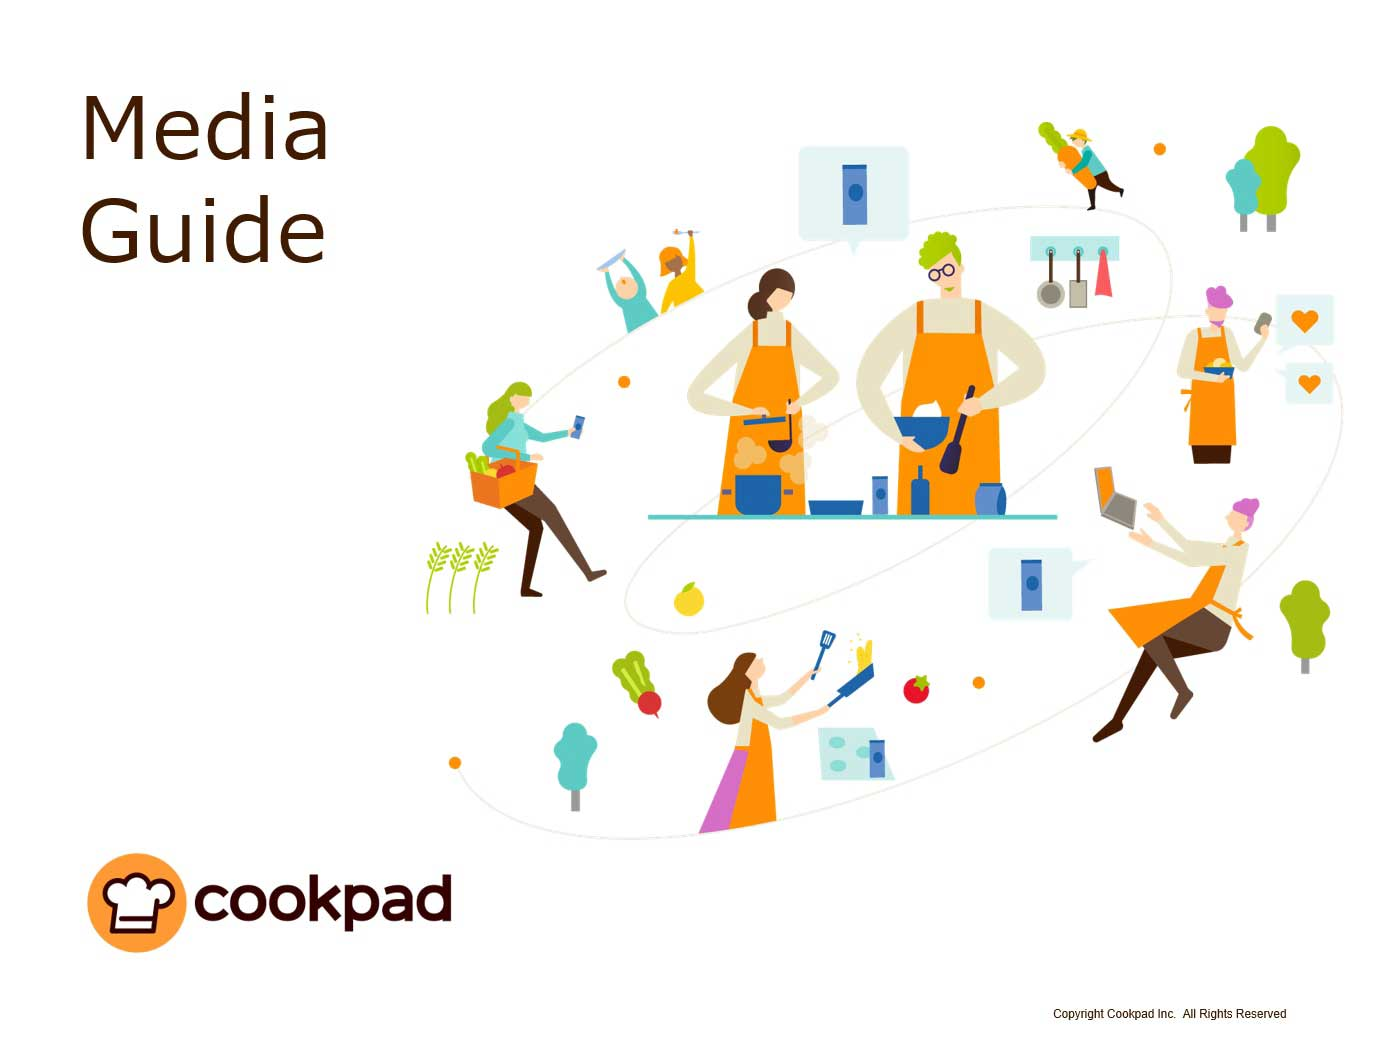 Cookpad media guide